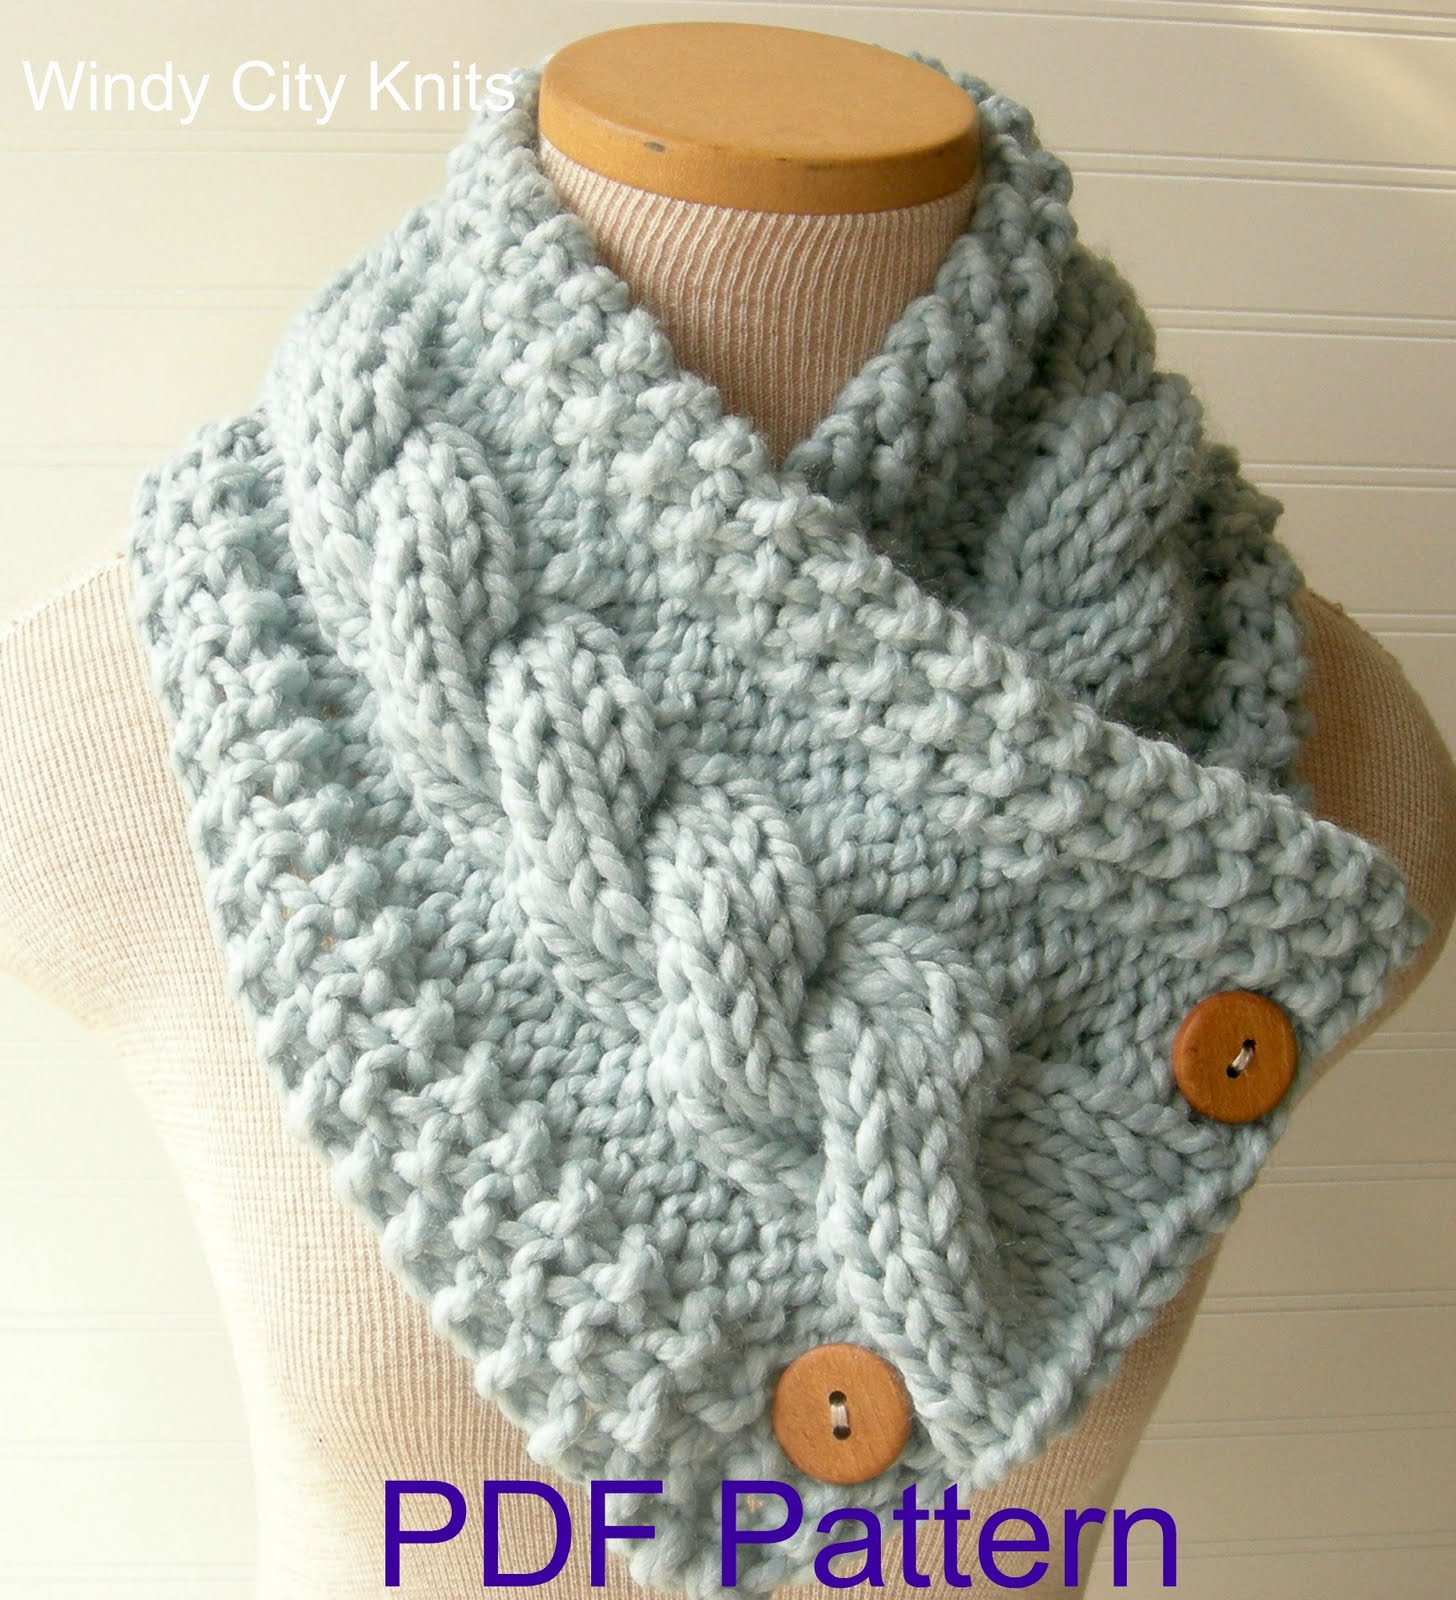 Free Knitting Patterns For Cowl Neck Scarves : WindyCityKnits: Knit Cable Cowl Scarf Pattern Pdf